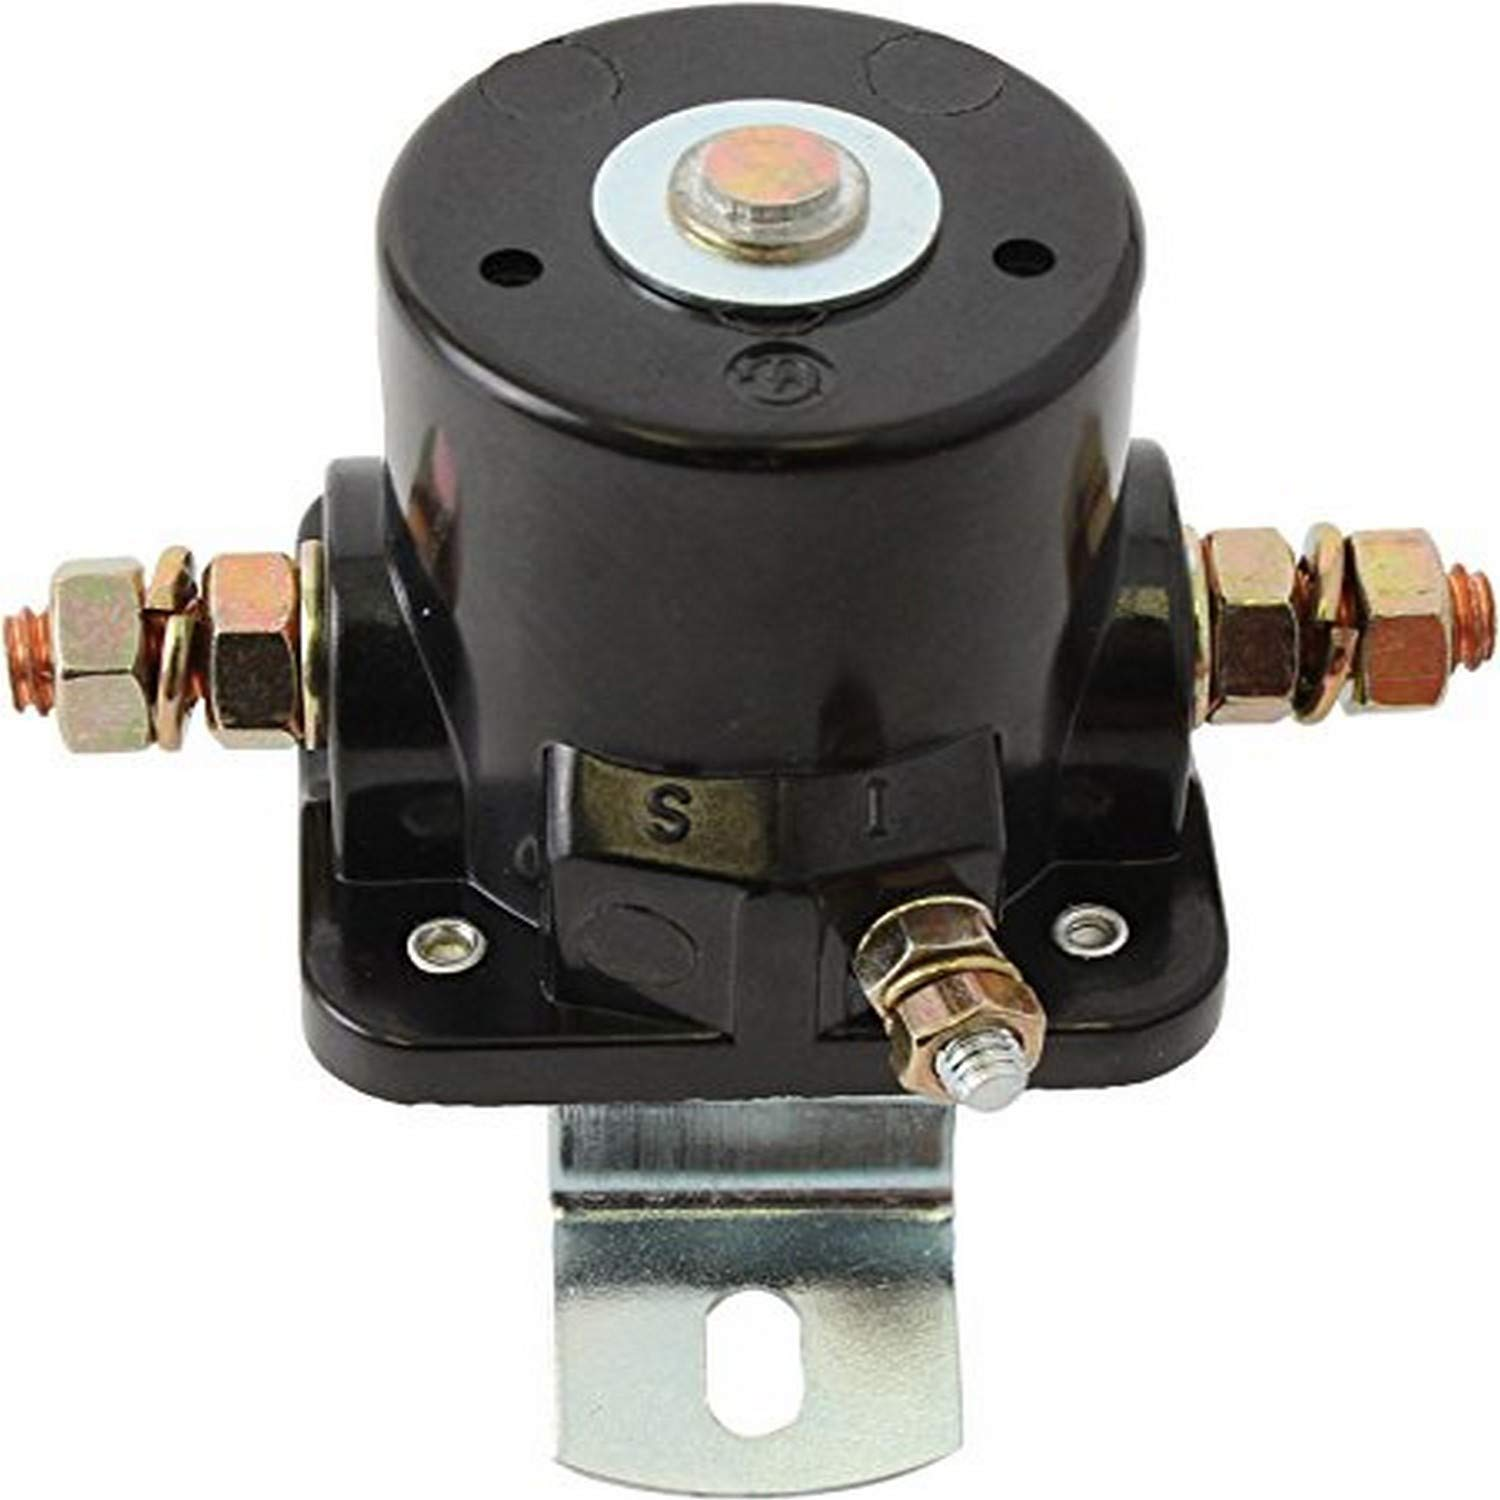 DB Electrical SFD6025 New Solenoid Relay Compatible with/Replacement for 12 Volt Ford 2N 8N 9N Tractor 8N-11450, Sw218, Sw355 10-FO218-12V 7-1023-12V 240-14008